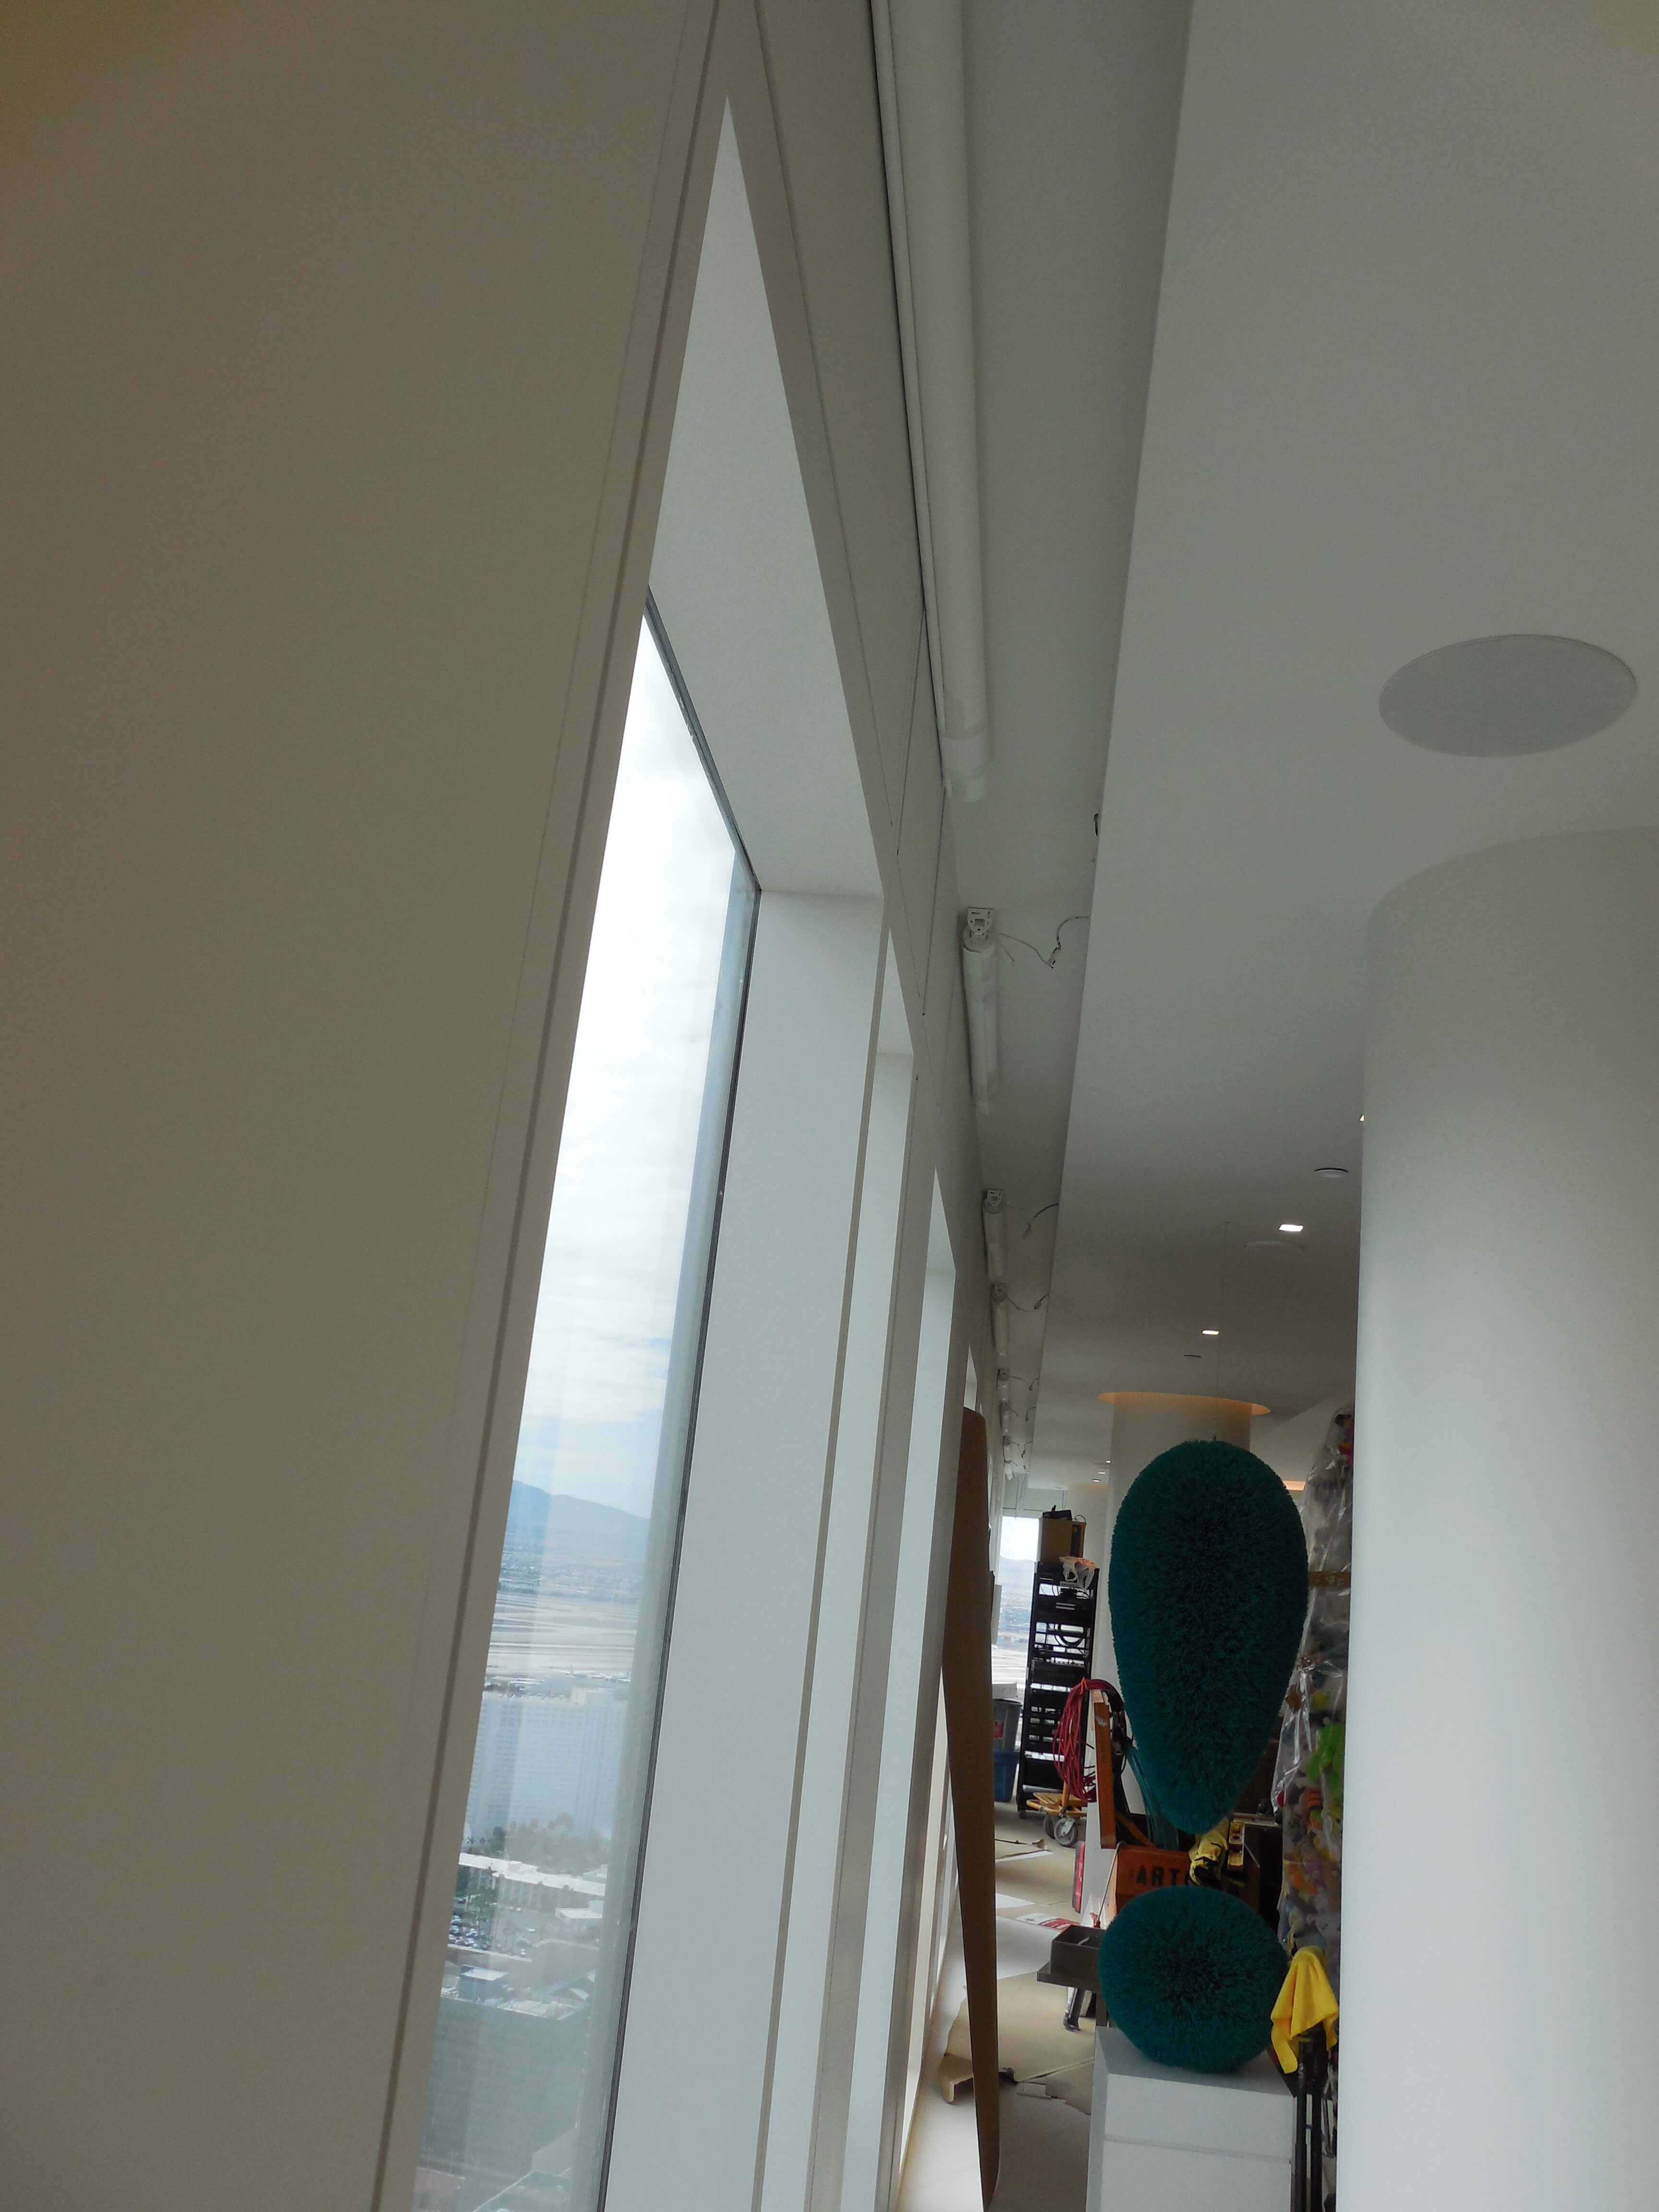 Automated Motorized Shades/ In-Ceiling Speakers